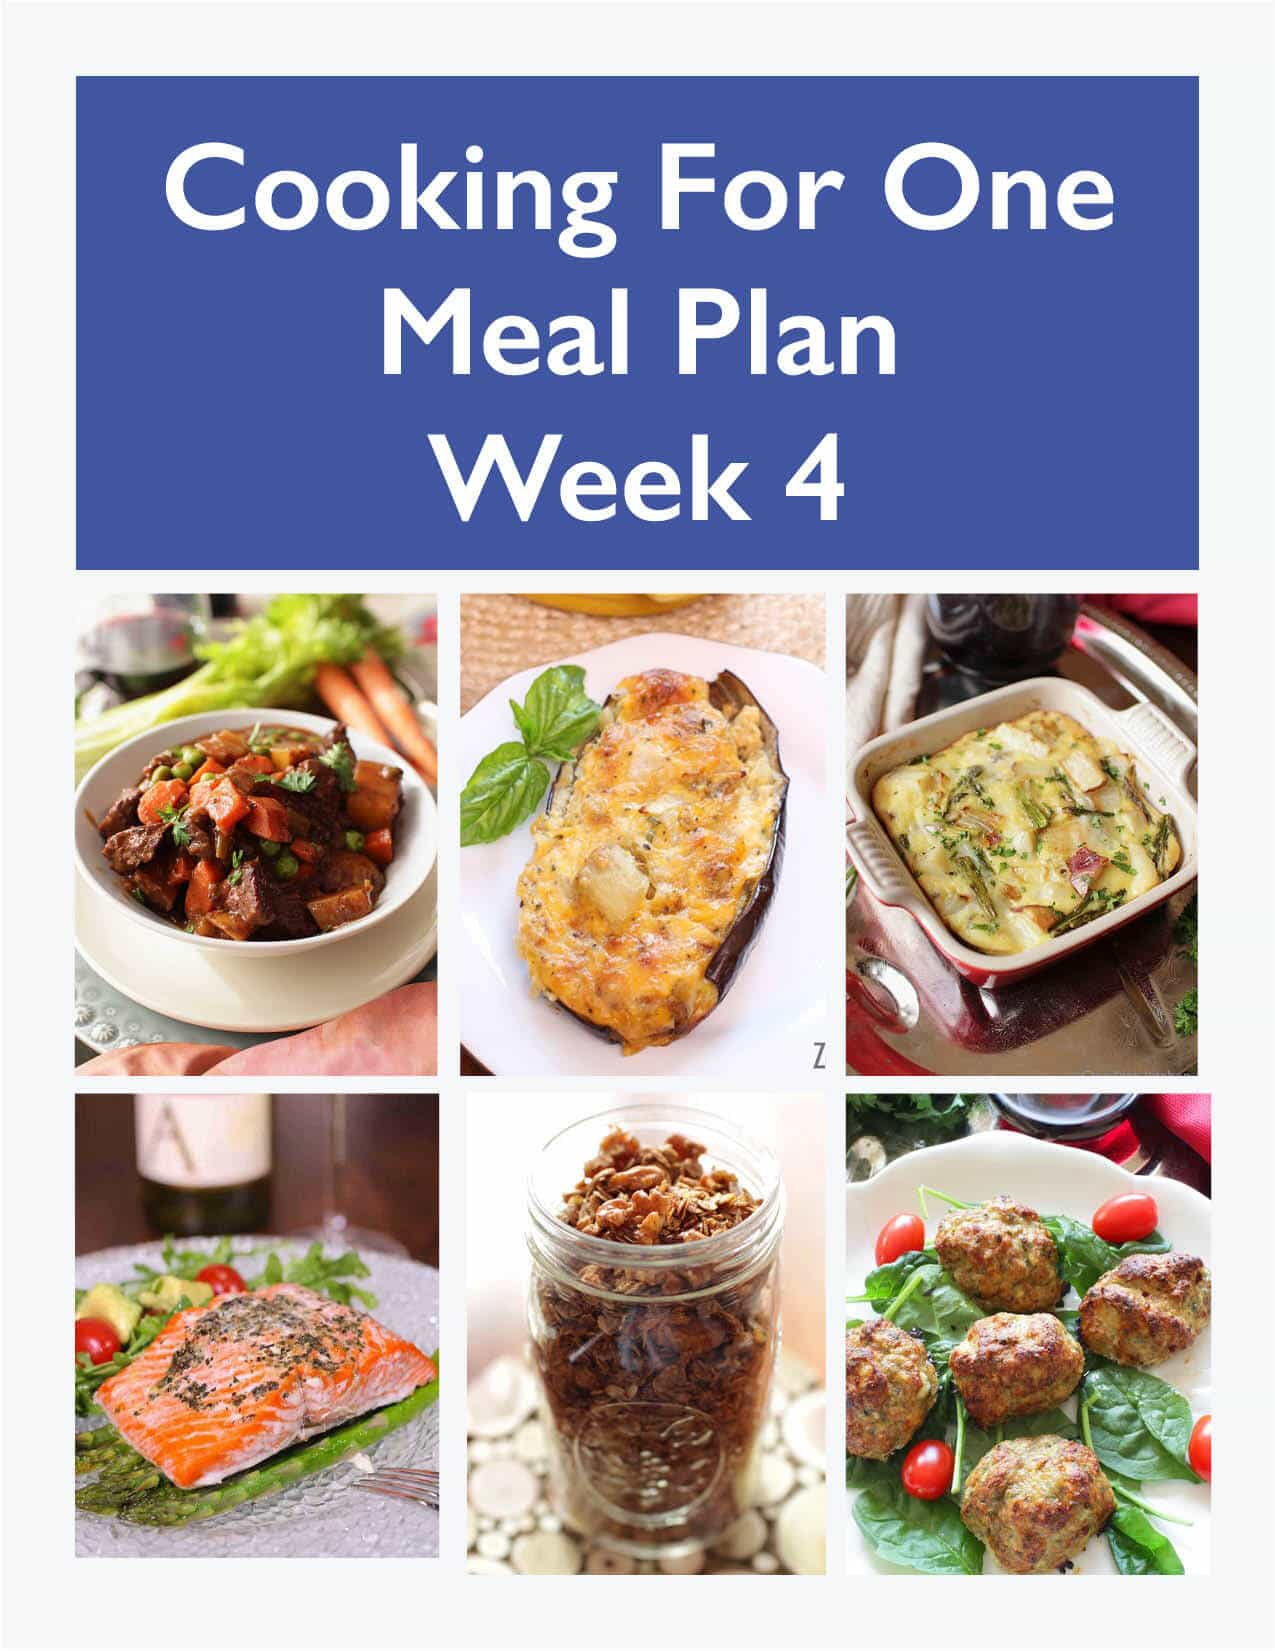 Promotional title page of the six Cooking For One Meal Plan Week Four dishes